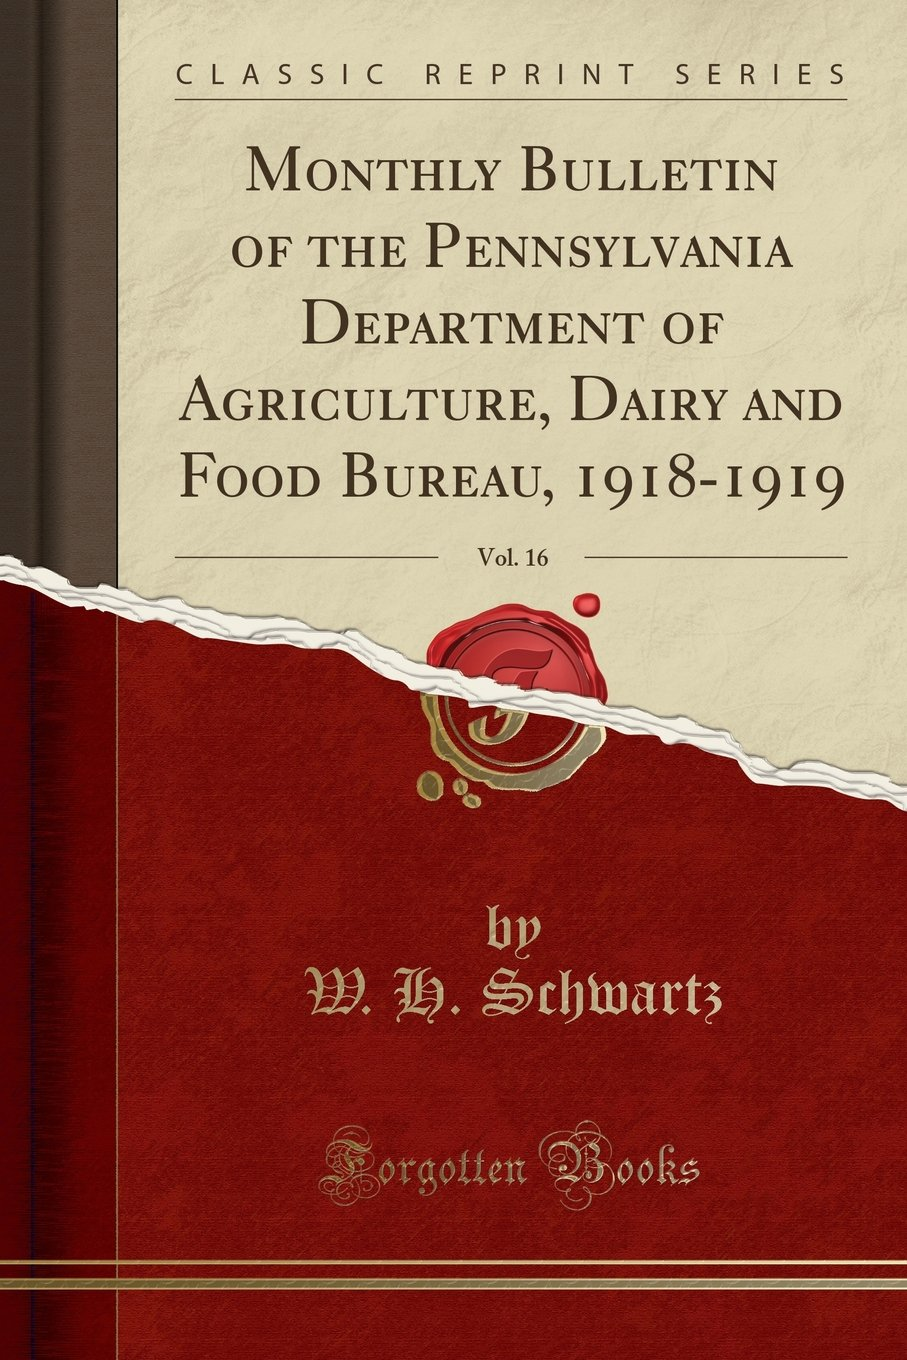 Monthly Bulletin of the Pennsylvania Department of Agriculture, Dairy and Food Bureau, 1918-1919, Vol. 16 (Classic Reprint) ebook